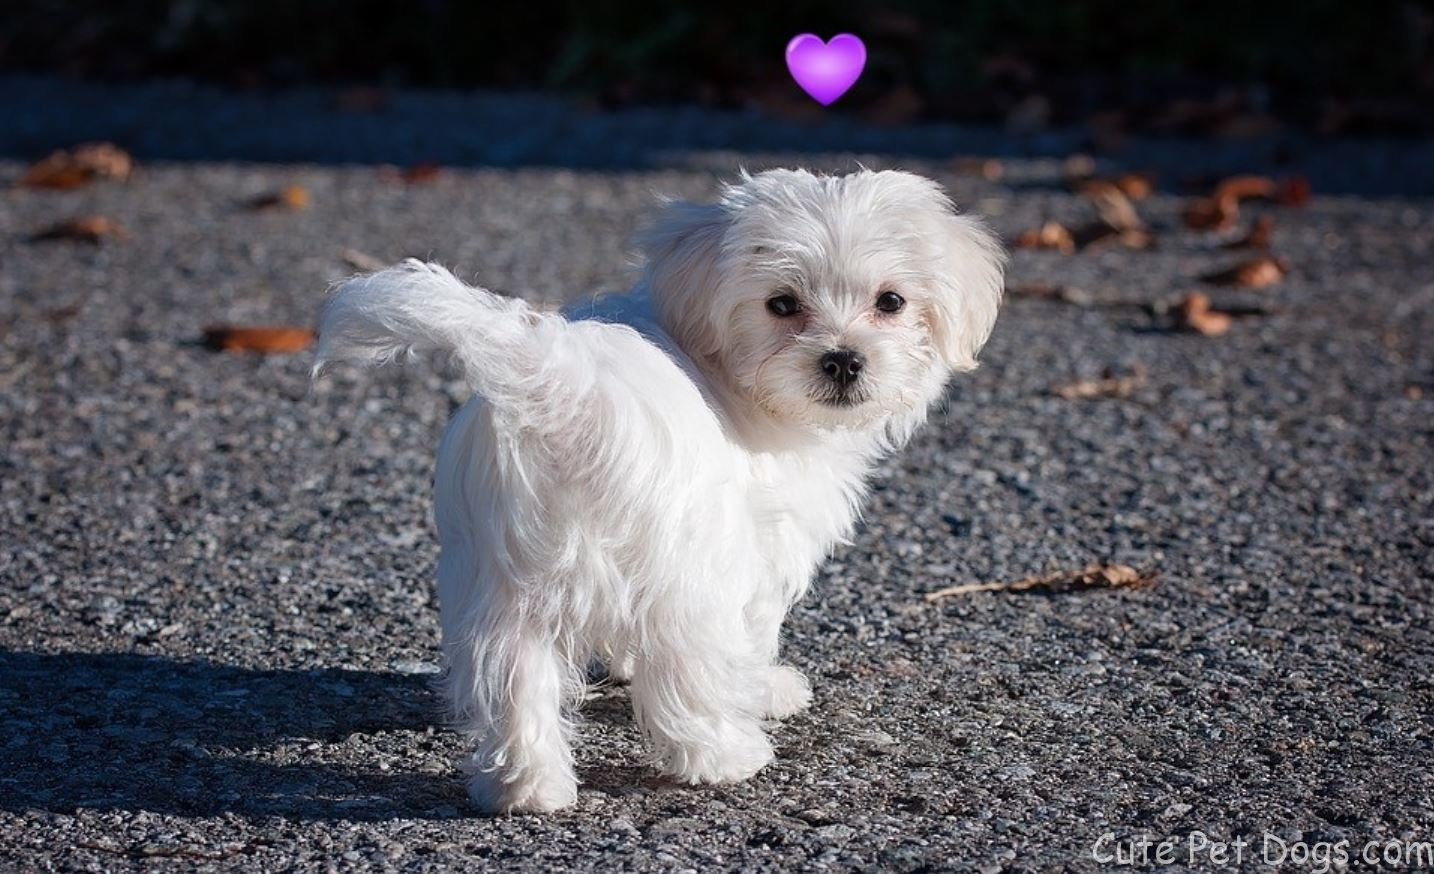 Maltese Dogs and Cute Teacup Maltese Puppies | Cute Pet Dogs